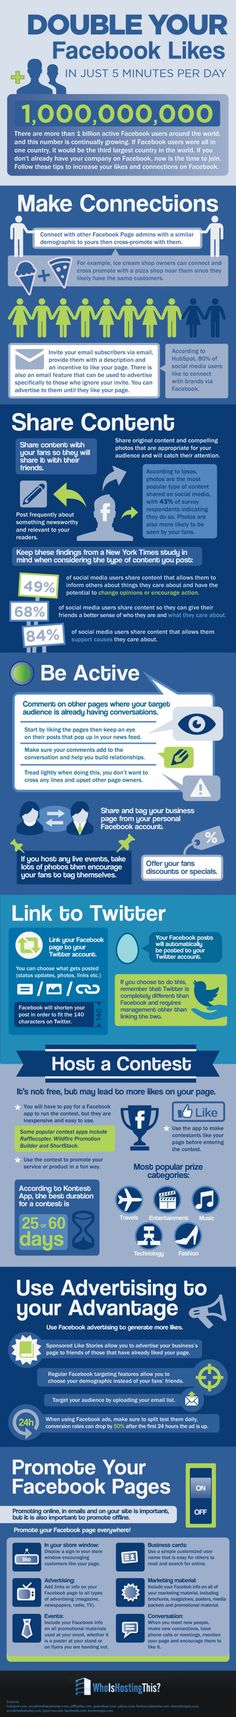 How To Increase Your Facebook Likes Infographic